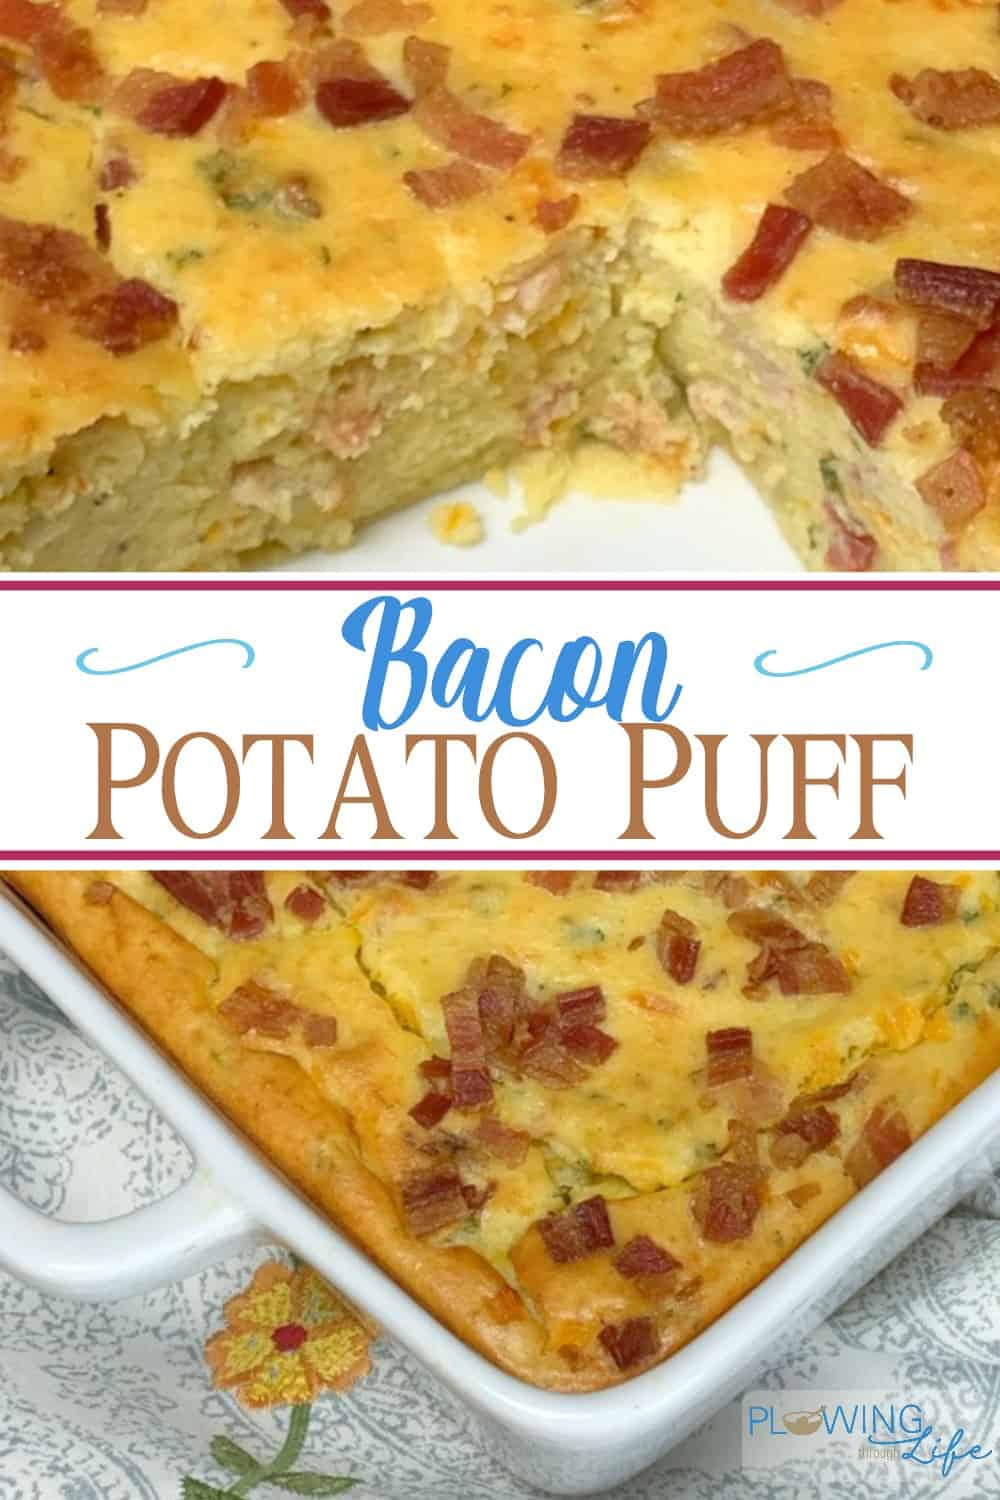 Bacon Potato Puff